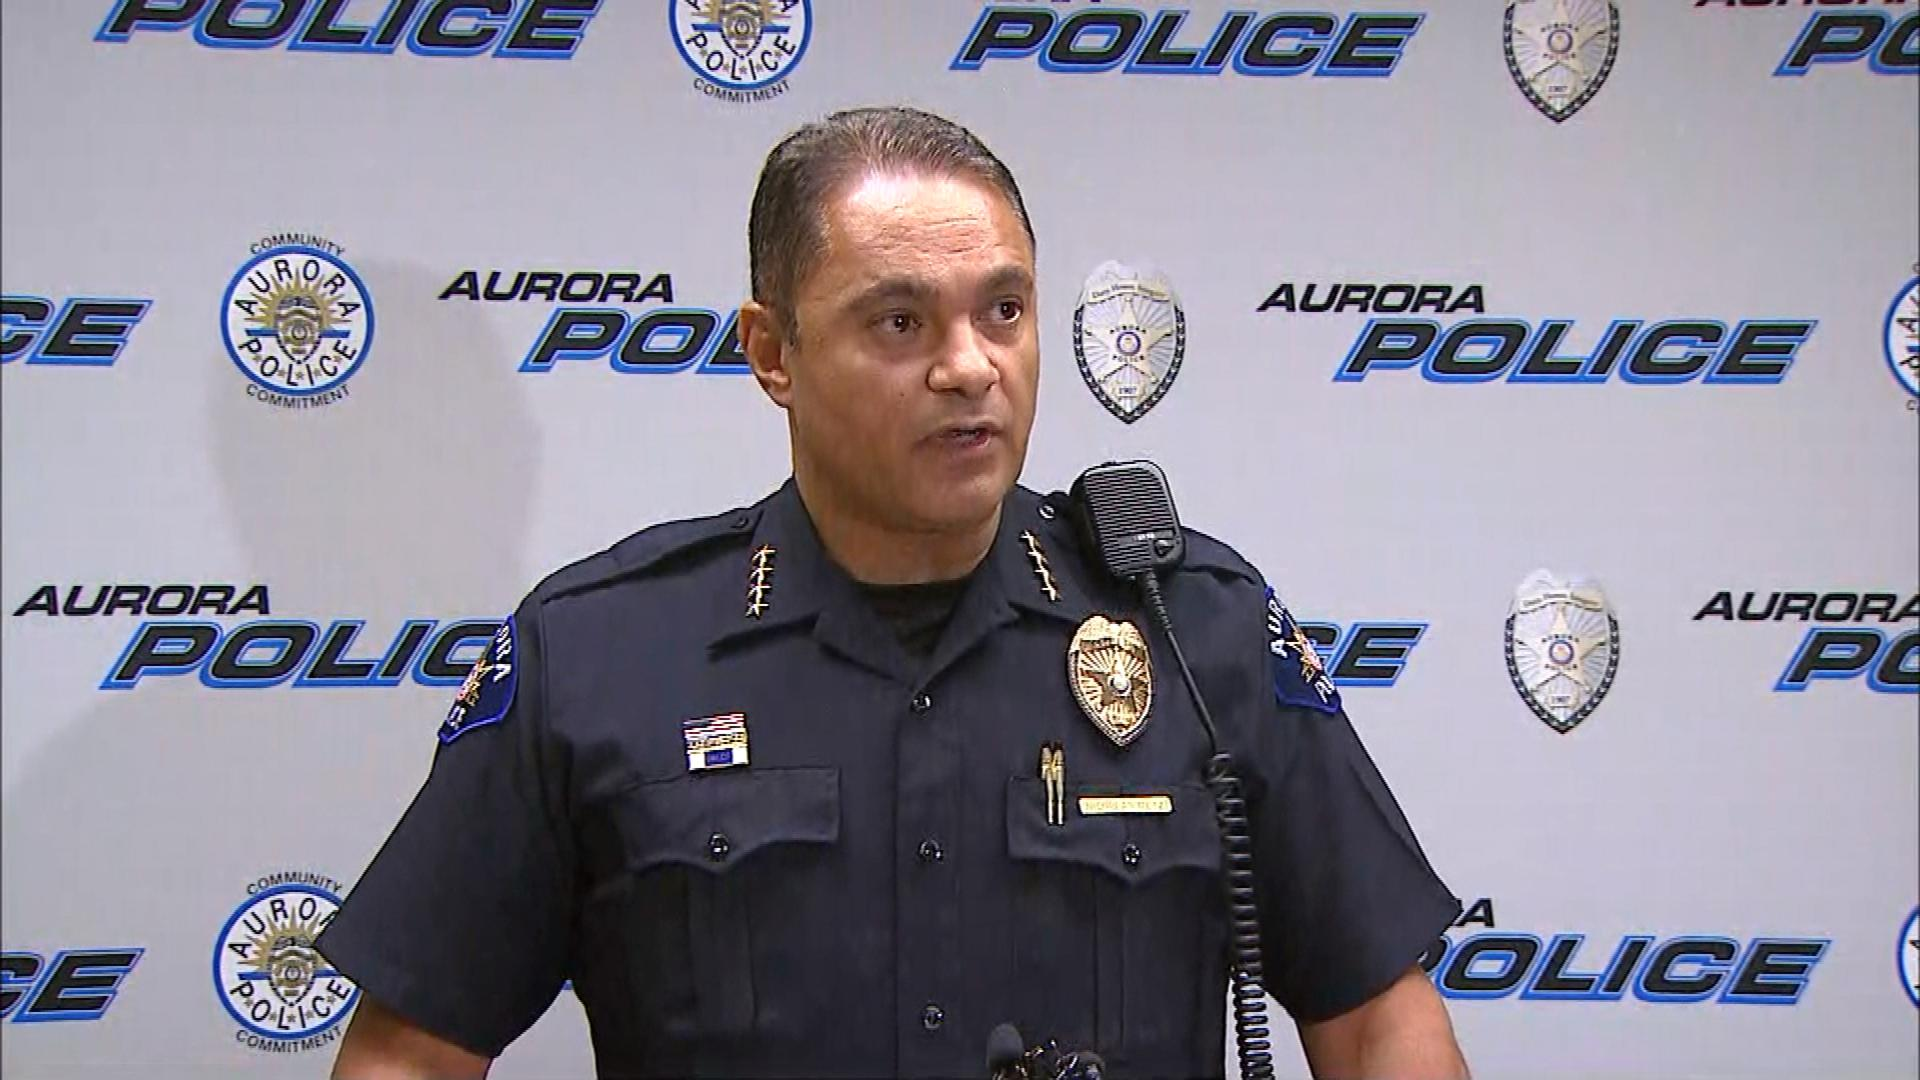 Aurora Police Chief Nick Metz at the news conference on Tuesday (credit: CBS)